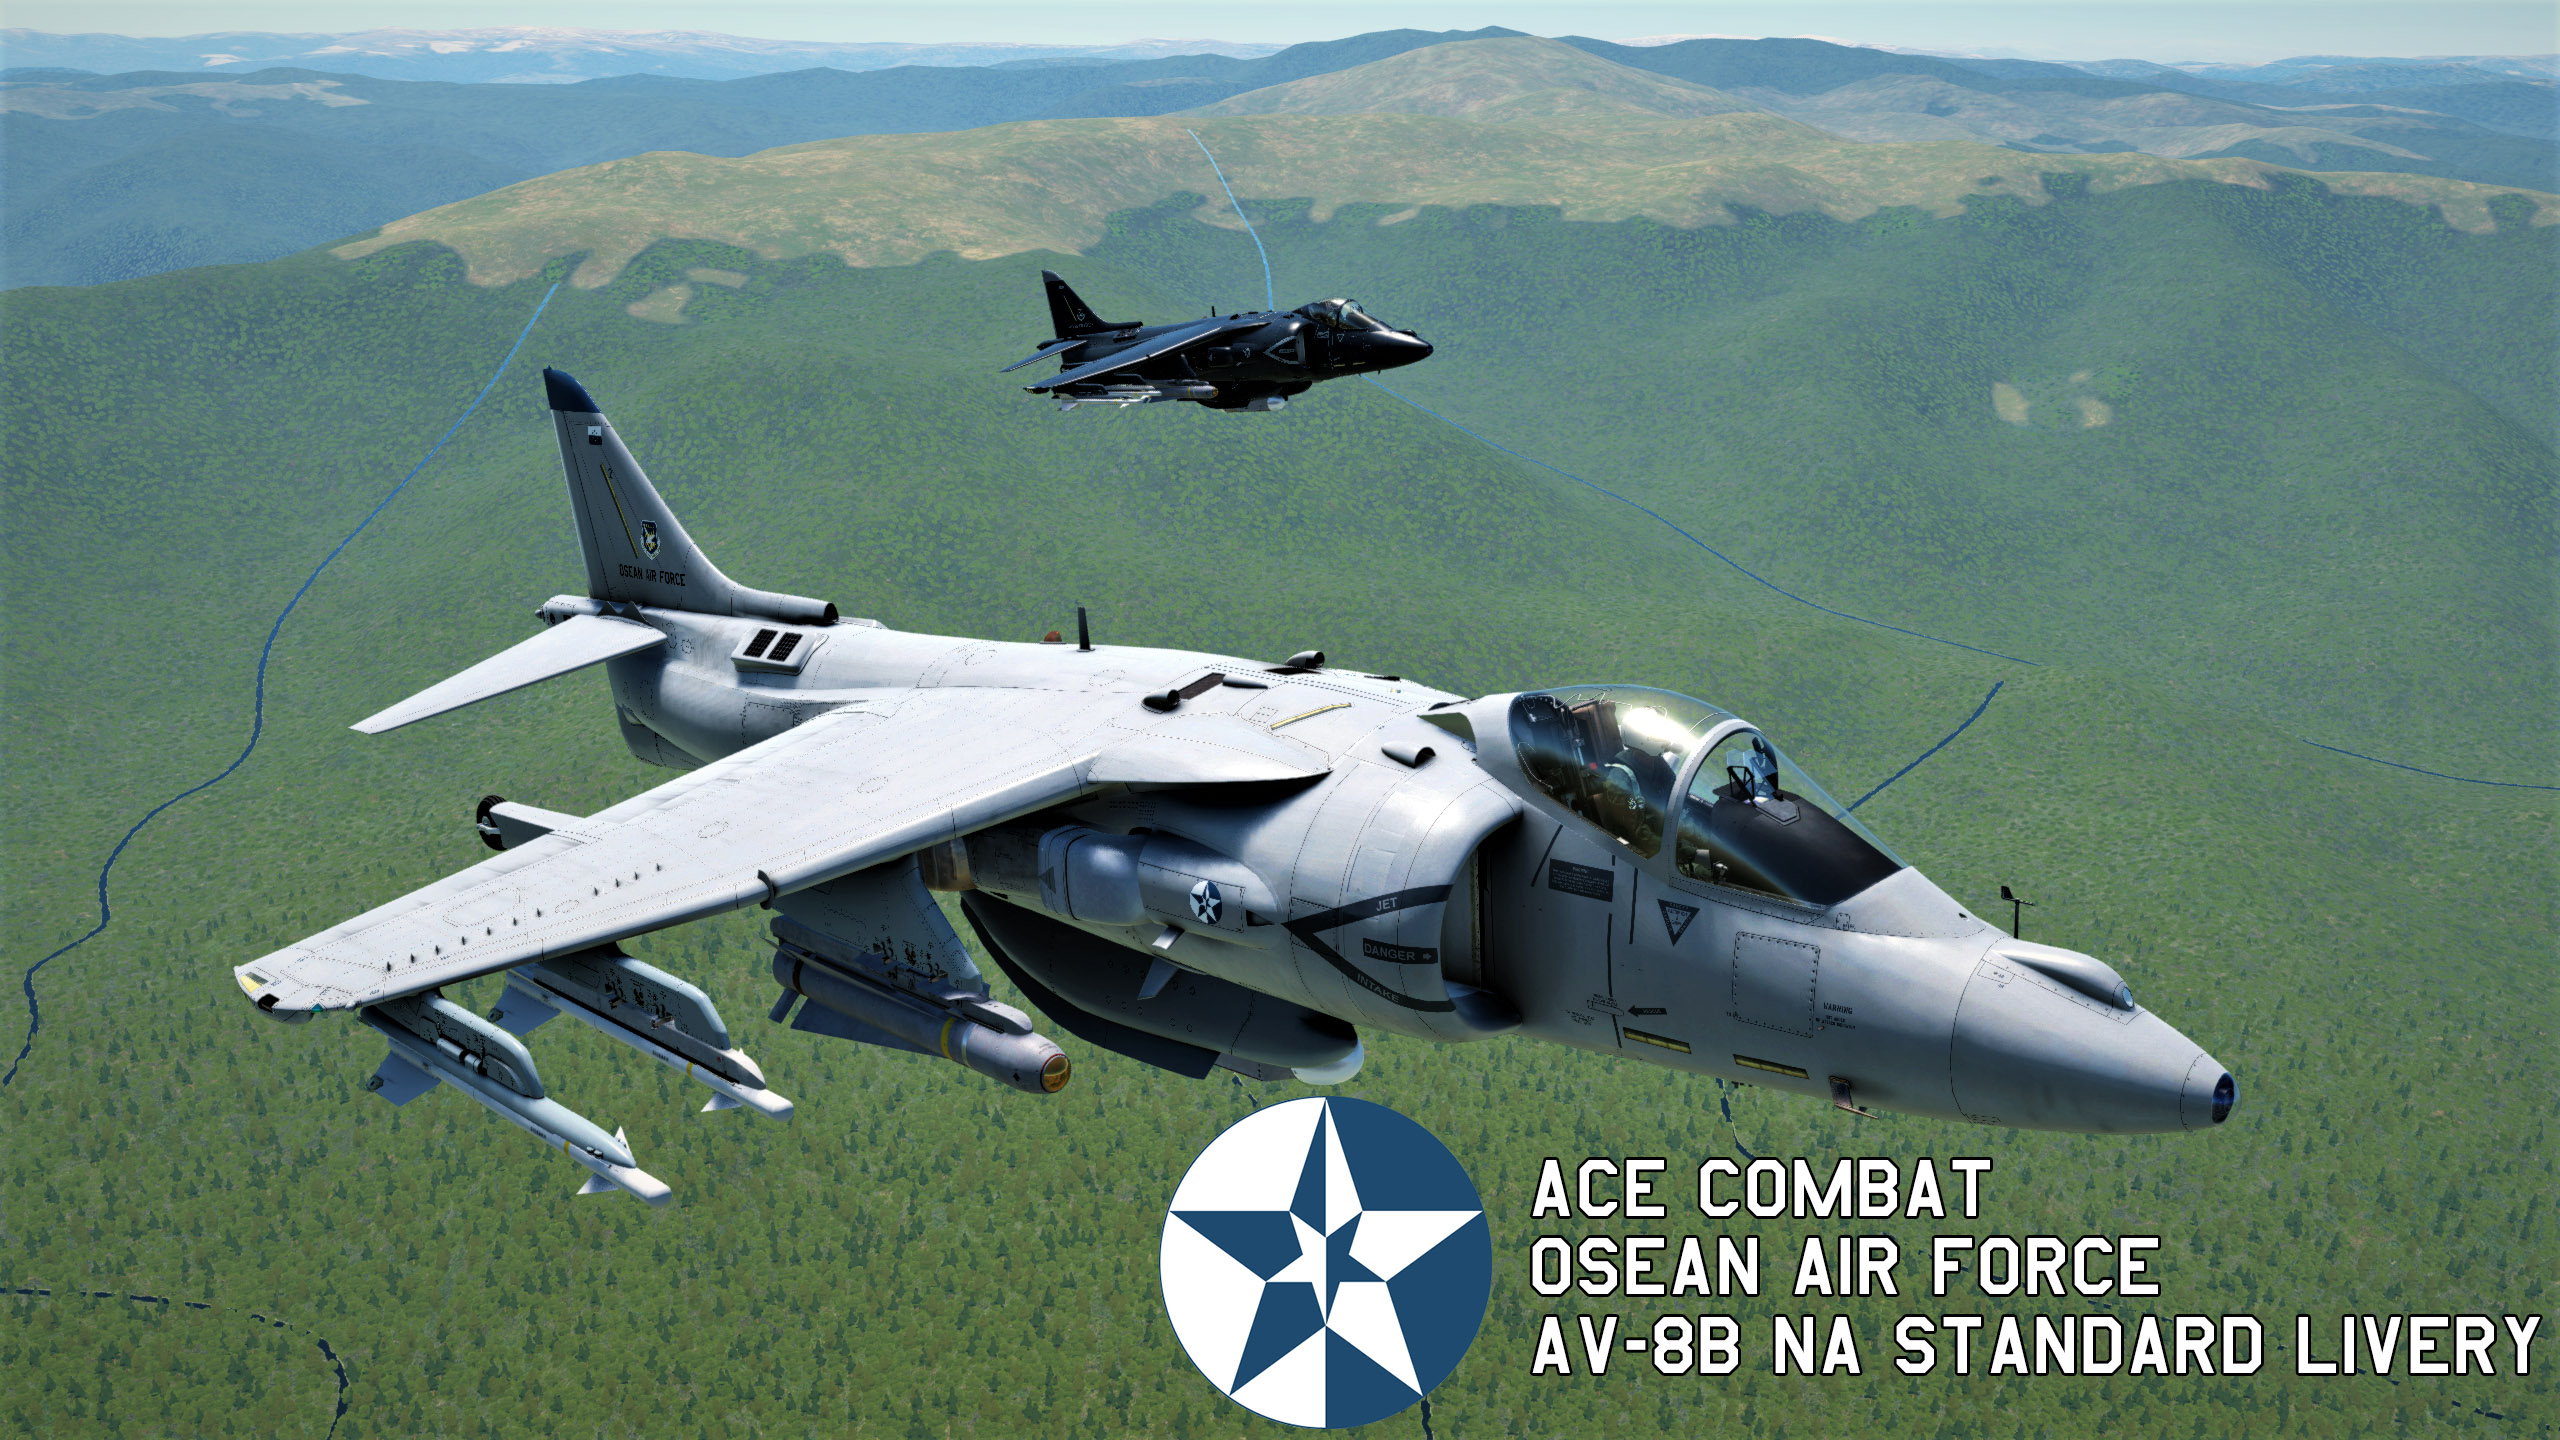 Av-8B - Ace Combat - Osean Air Force Standard Livery